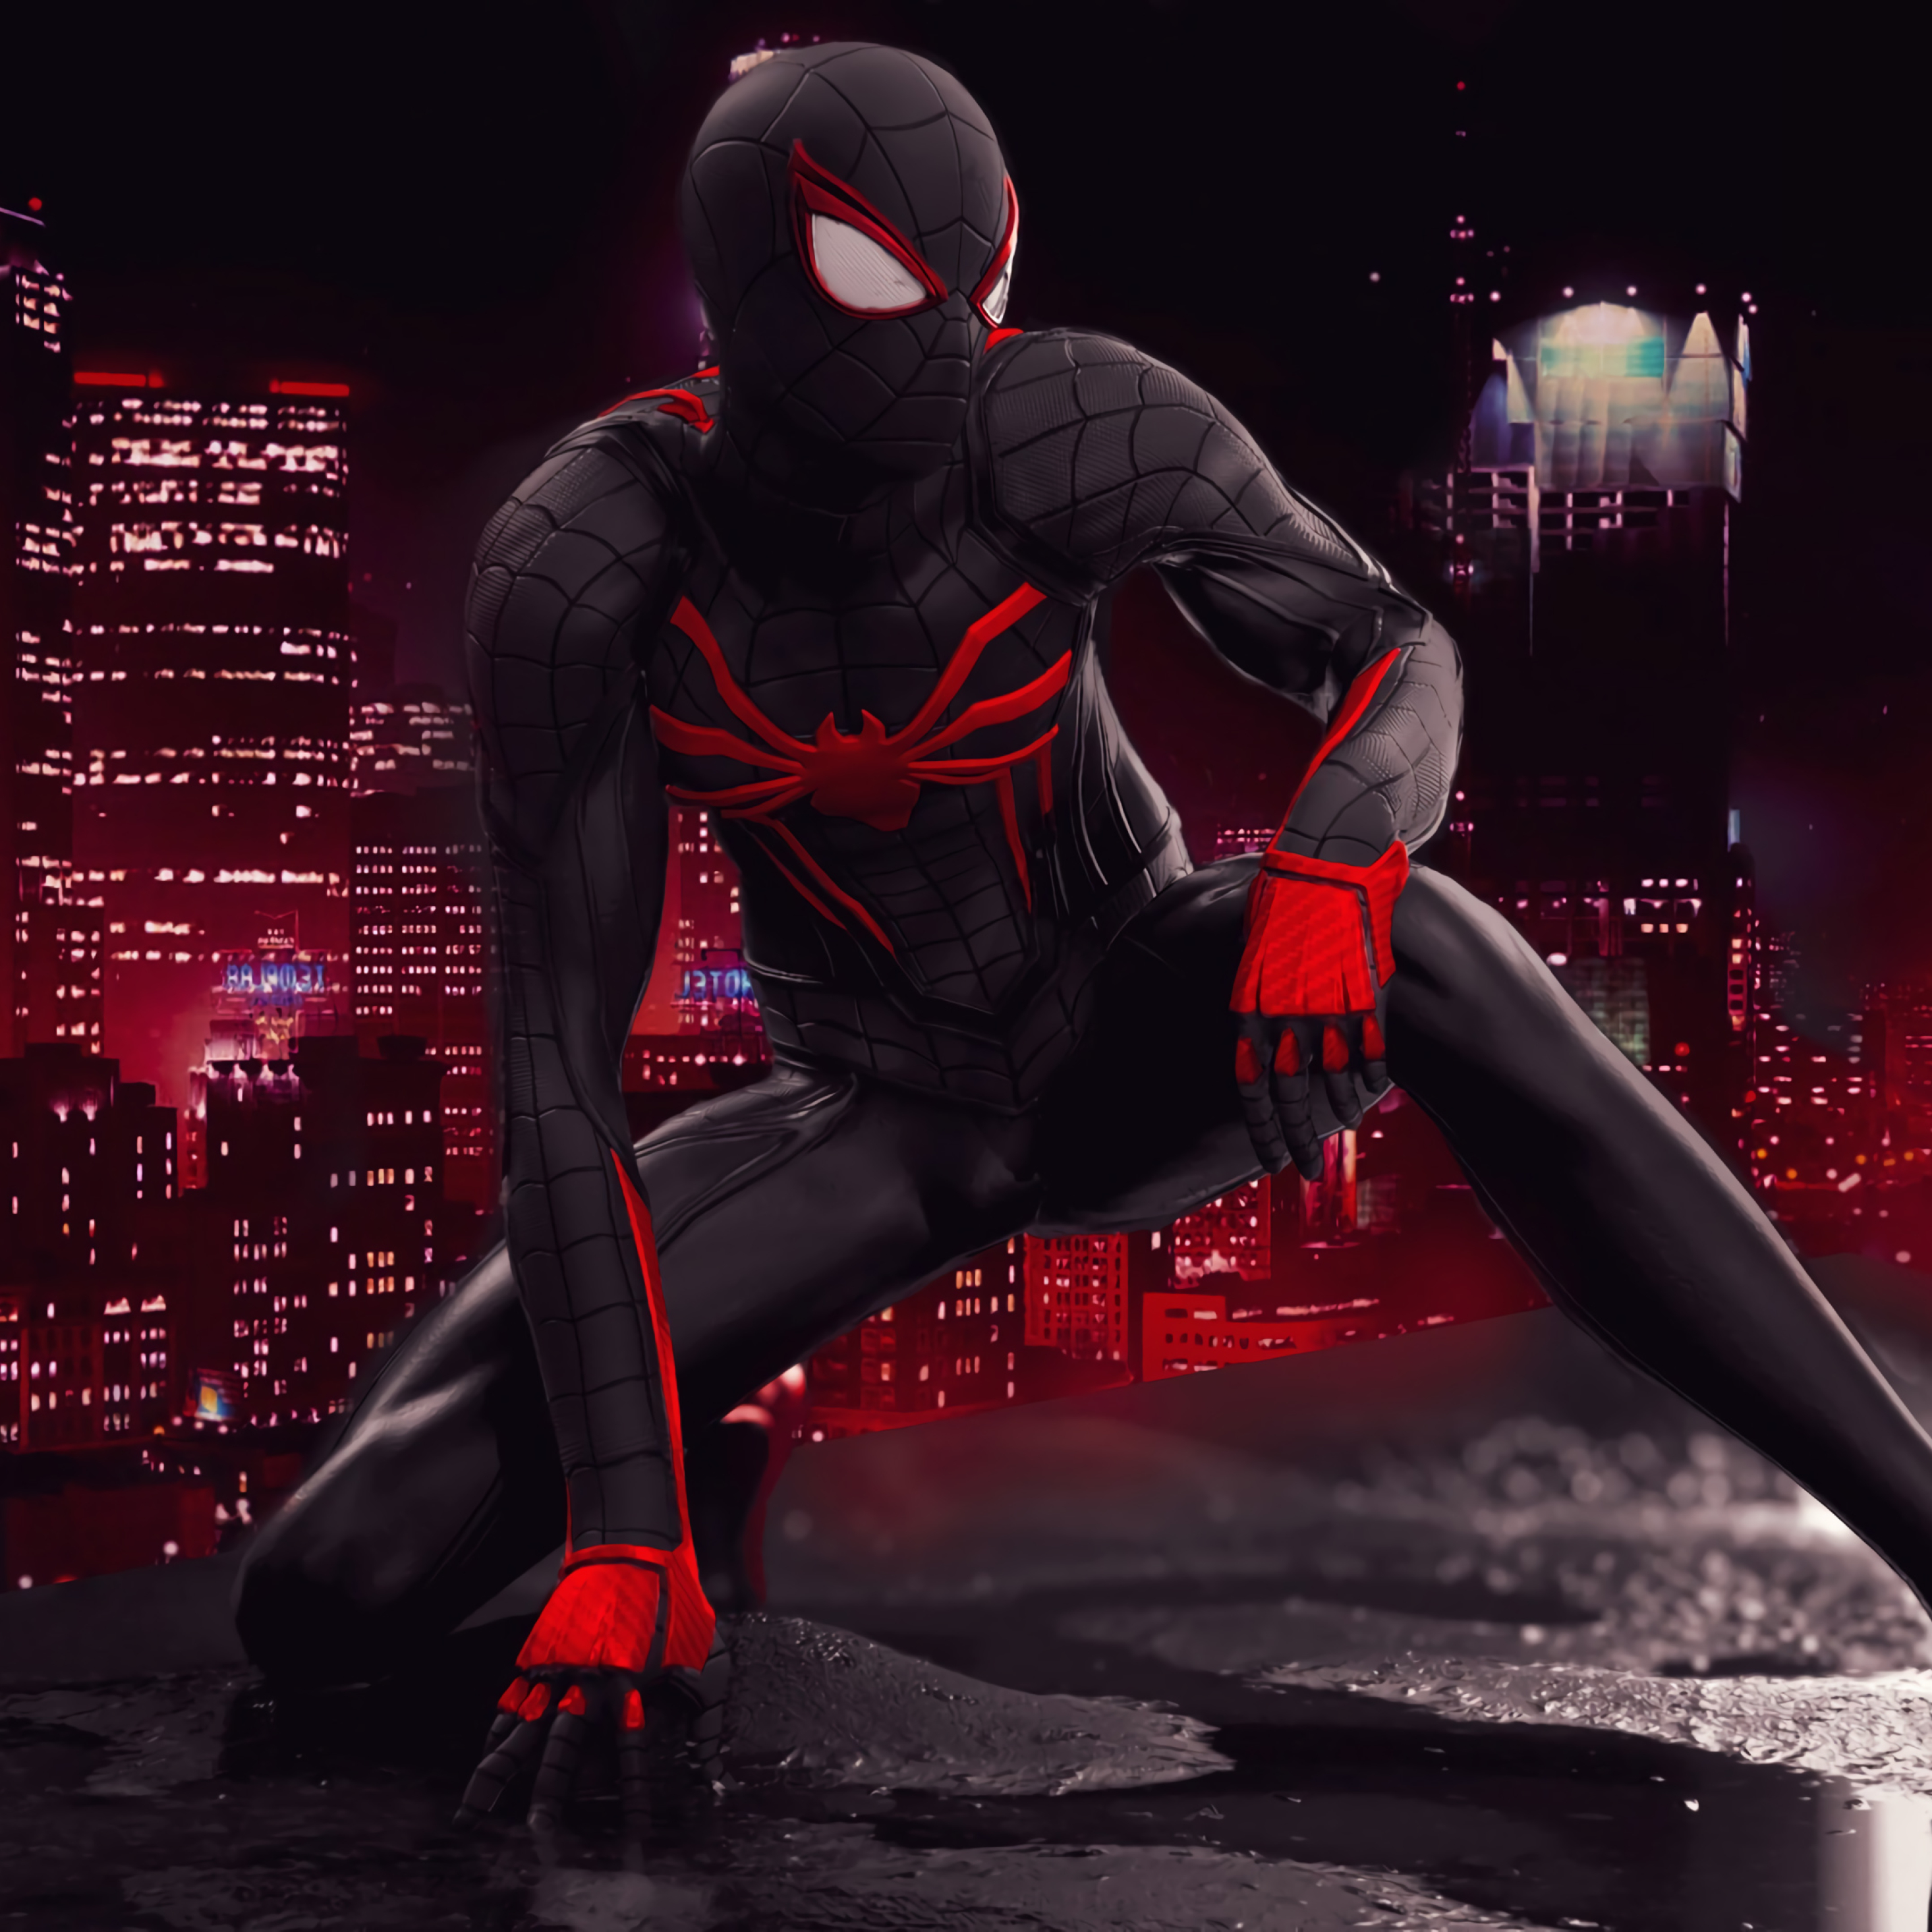 2932x2932 Spider Man Red And Black Suit Art Ipad Pro ...